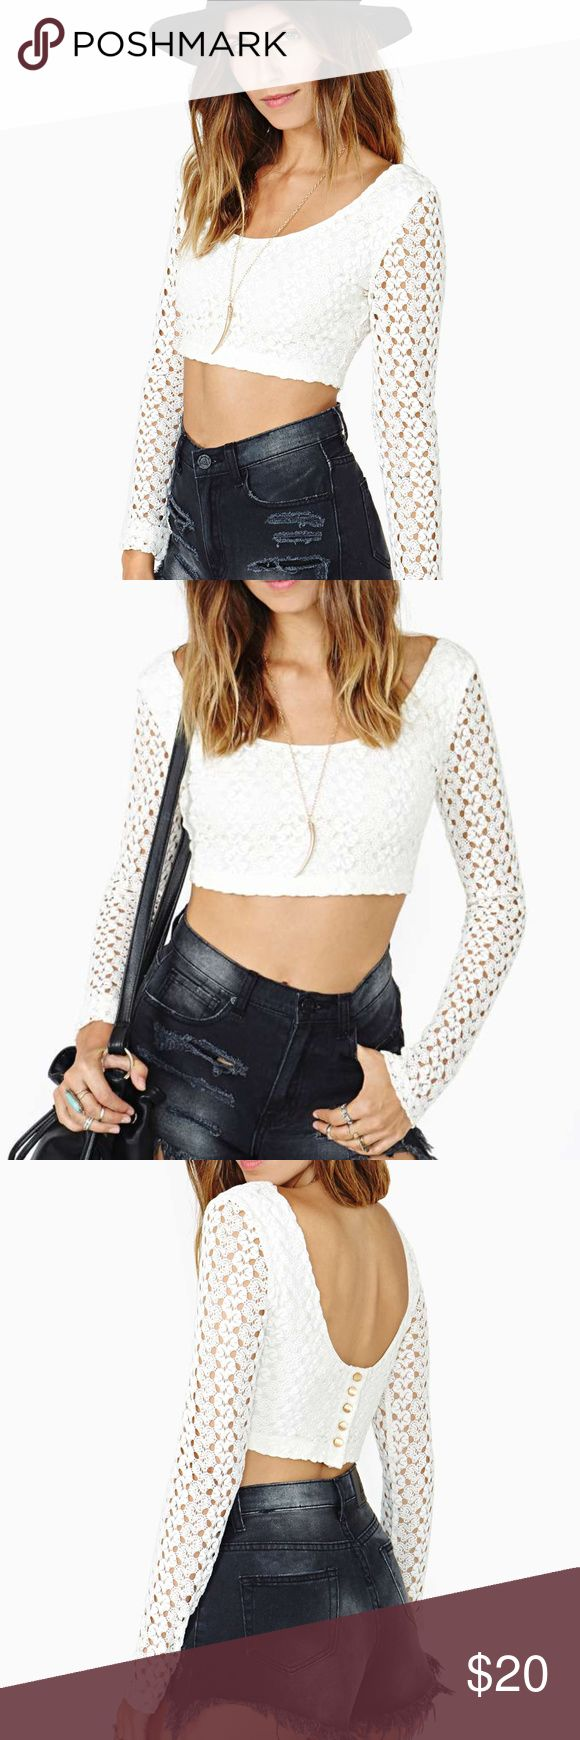 Nast Gal Festival Restless Lace Crop Top | AA28 Long Sleeve Ivory Lace Crop Top Gold Button Detailing in back Never Worn! Excellent Condition! Nasty Gal Tops Crop Tops